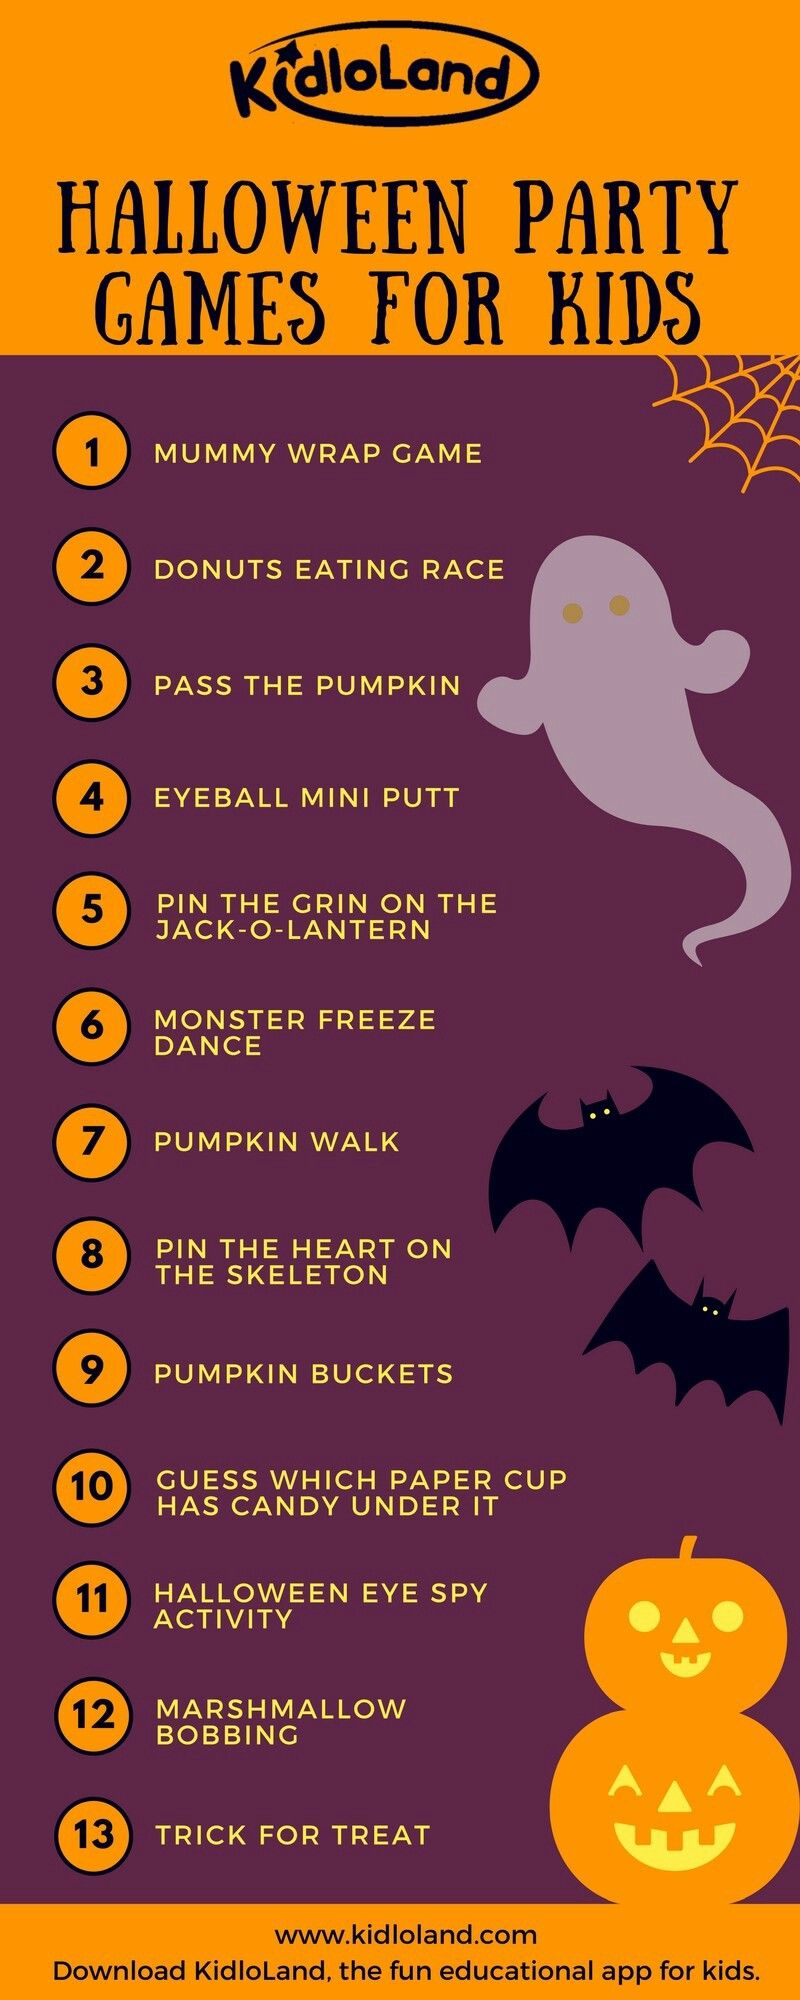 Here are some pretty easy and stress free Halloween games